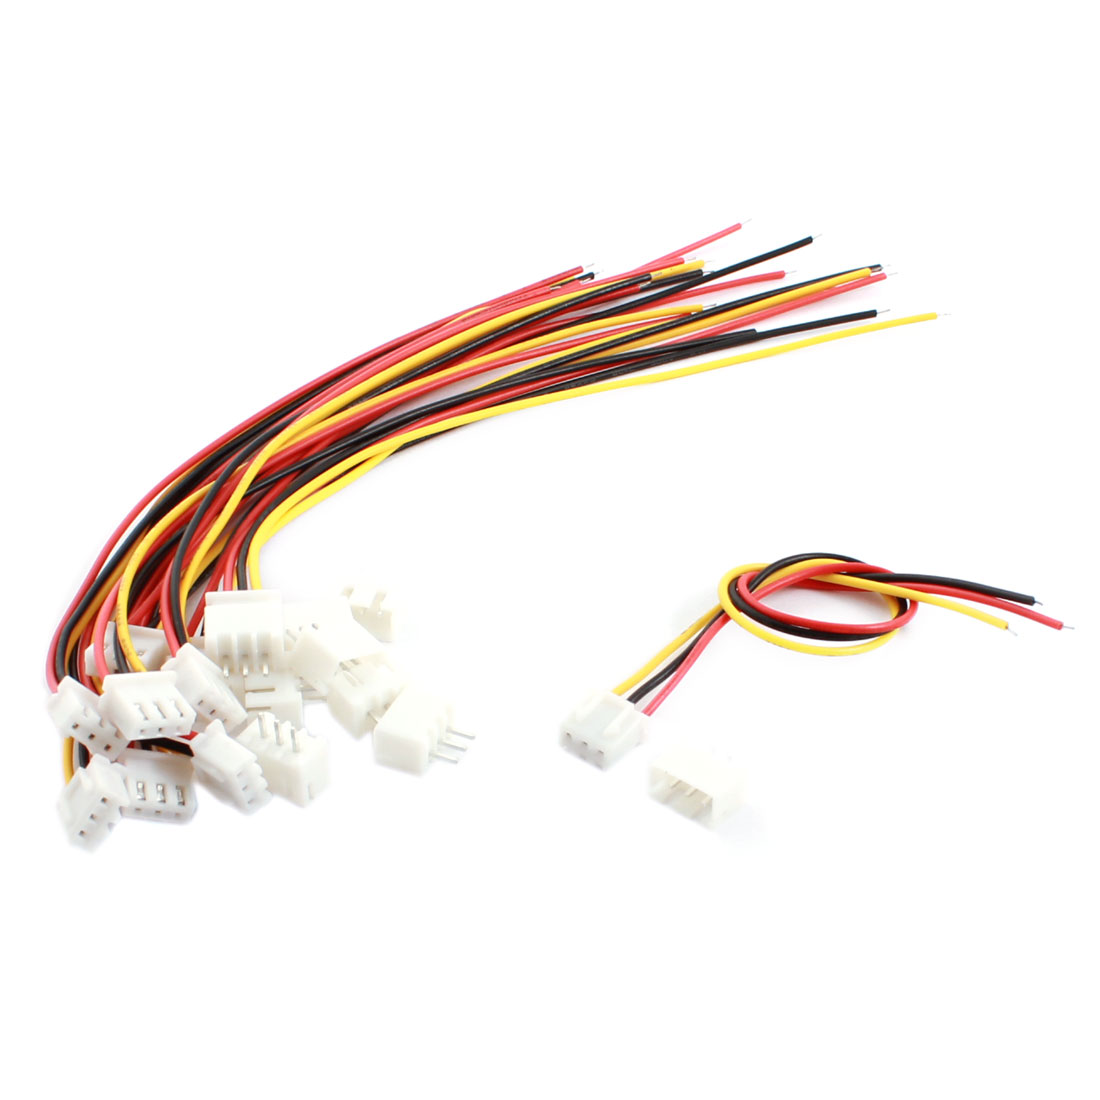 10 Pcs RC 2S Lipo Battery JST-EH Connnector Balance Charger Cable Adapter Extension Lead 16cm